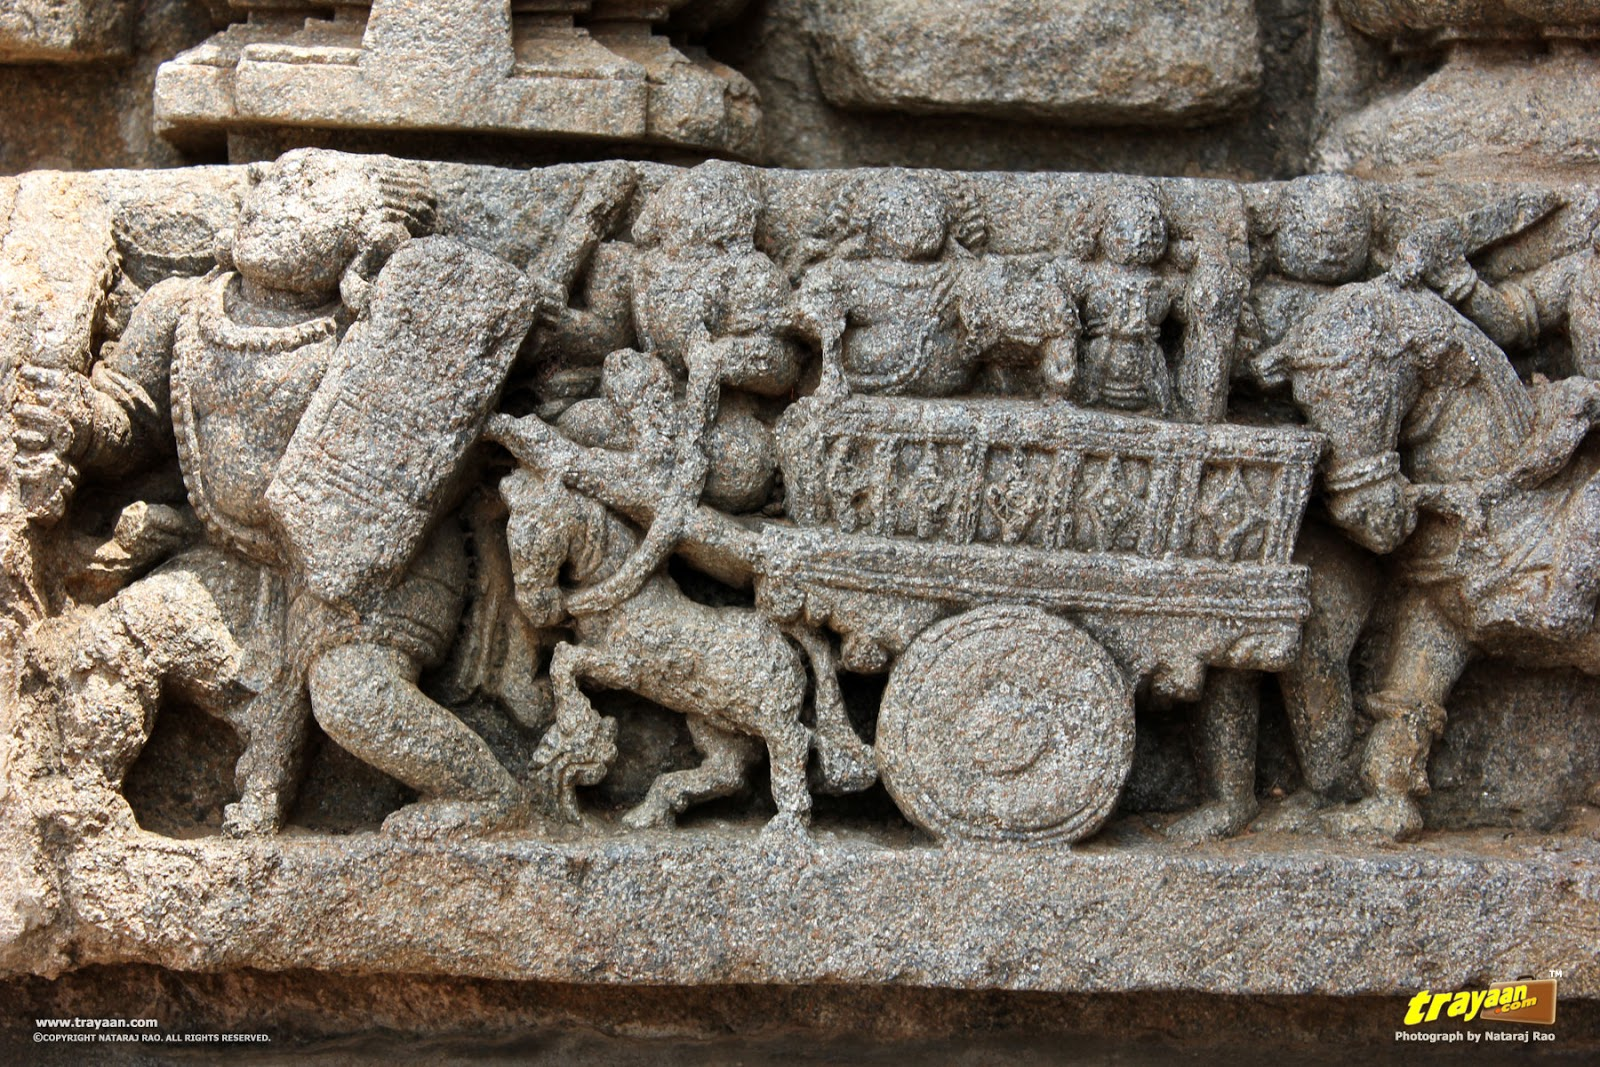 Horses and chariots sculptures on outer walls of Keshava Temple, Somanathapura, Mysore district, Karnataka, India